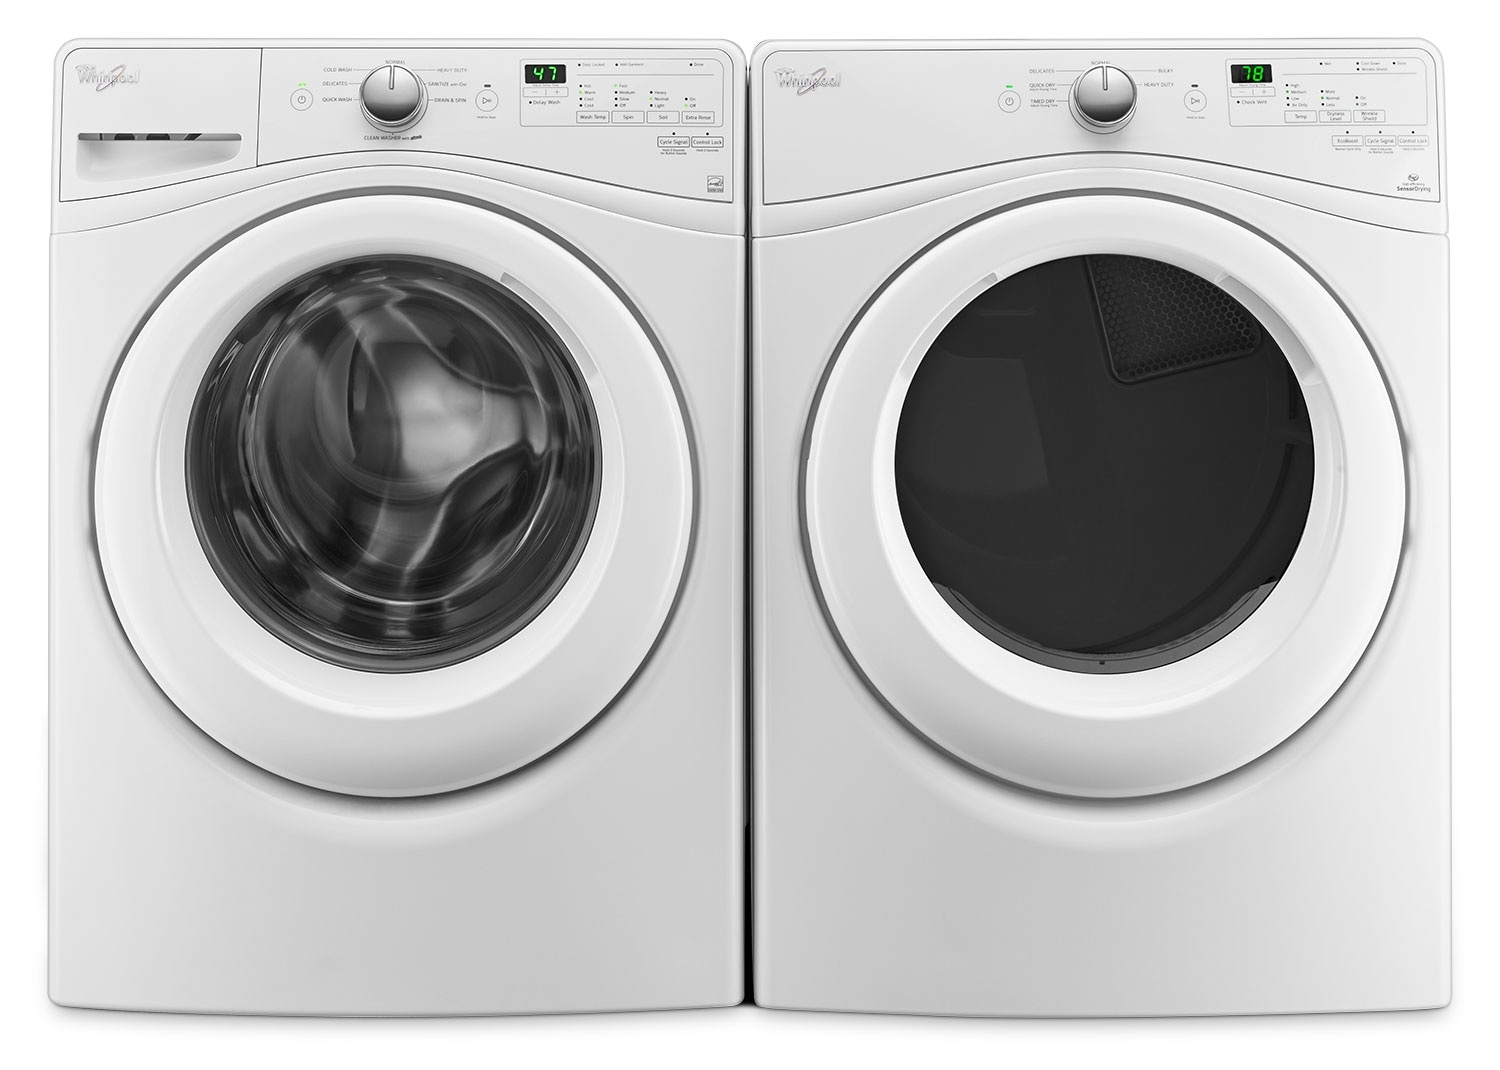 Washers and Dryers - Whirlpool 5.2 Cu. Ft. Front-Load Washer and 7.4 Cu. Ft. Electric Dryer – White